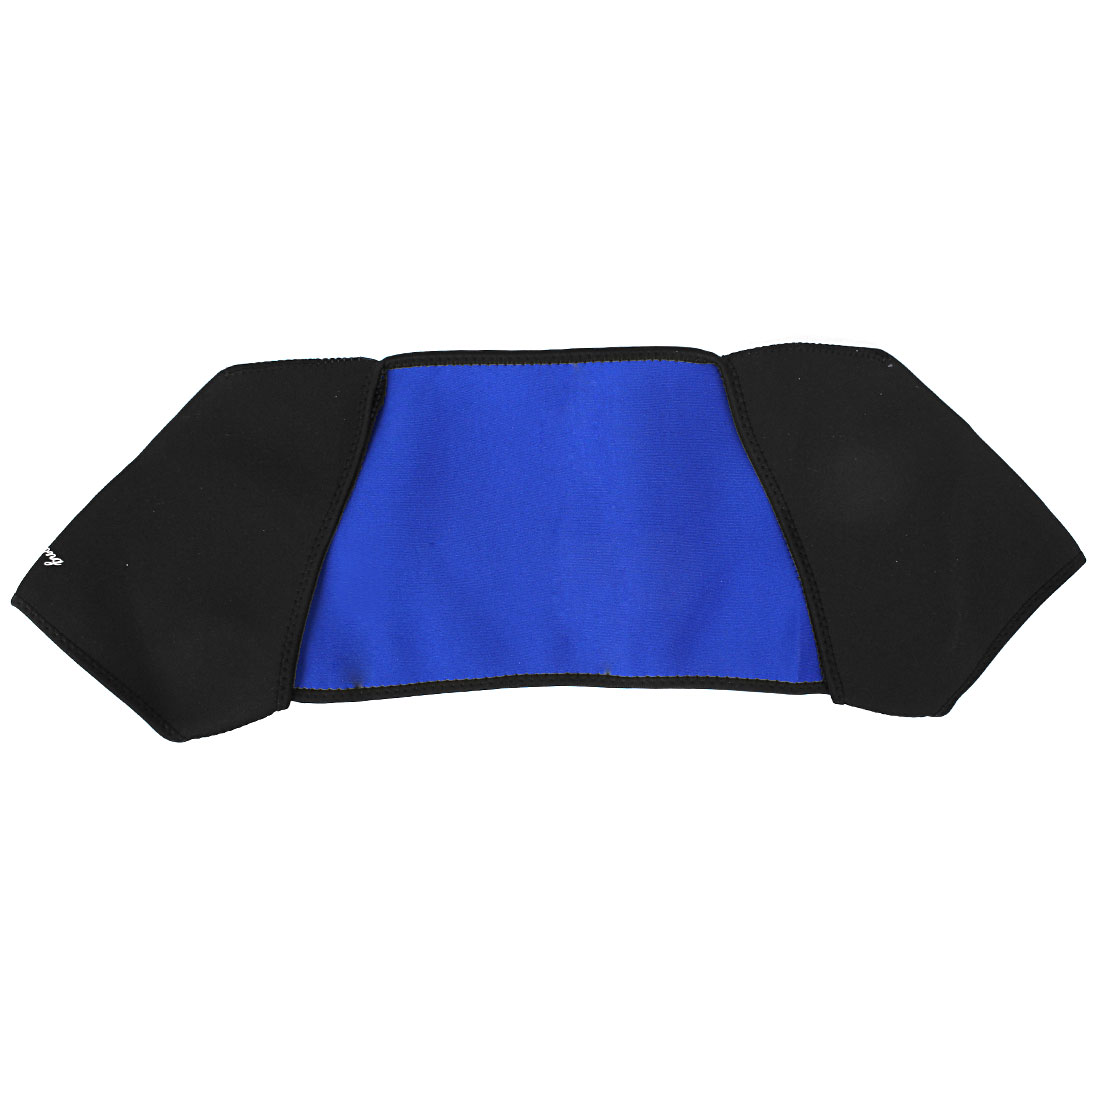 Gym Shoulder Pad Band Belt Wrap Support Brace Protector Black Blue